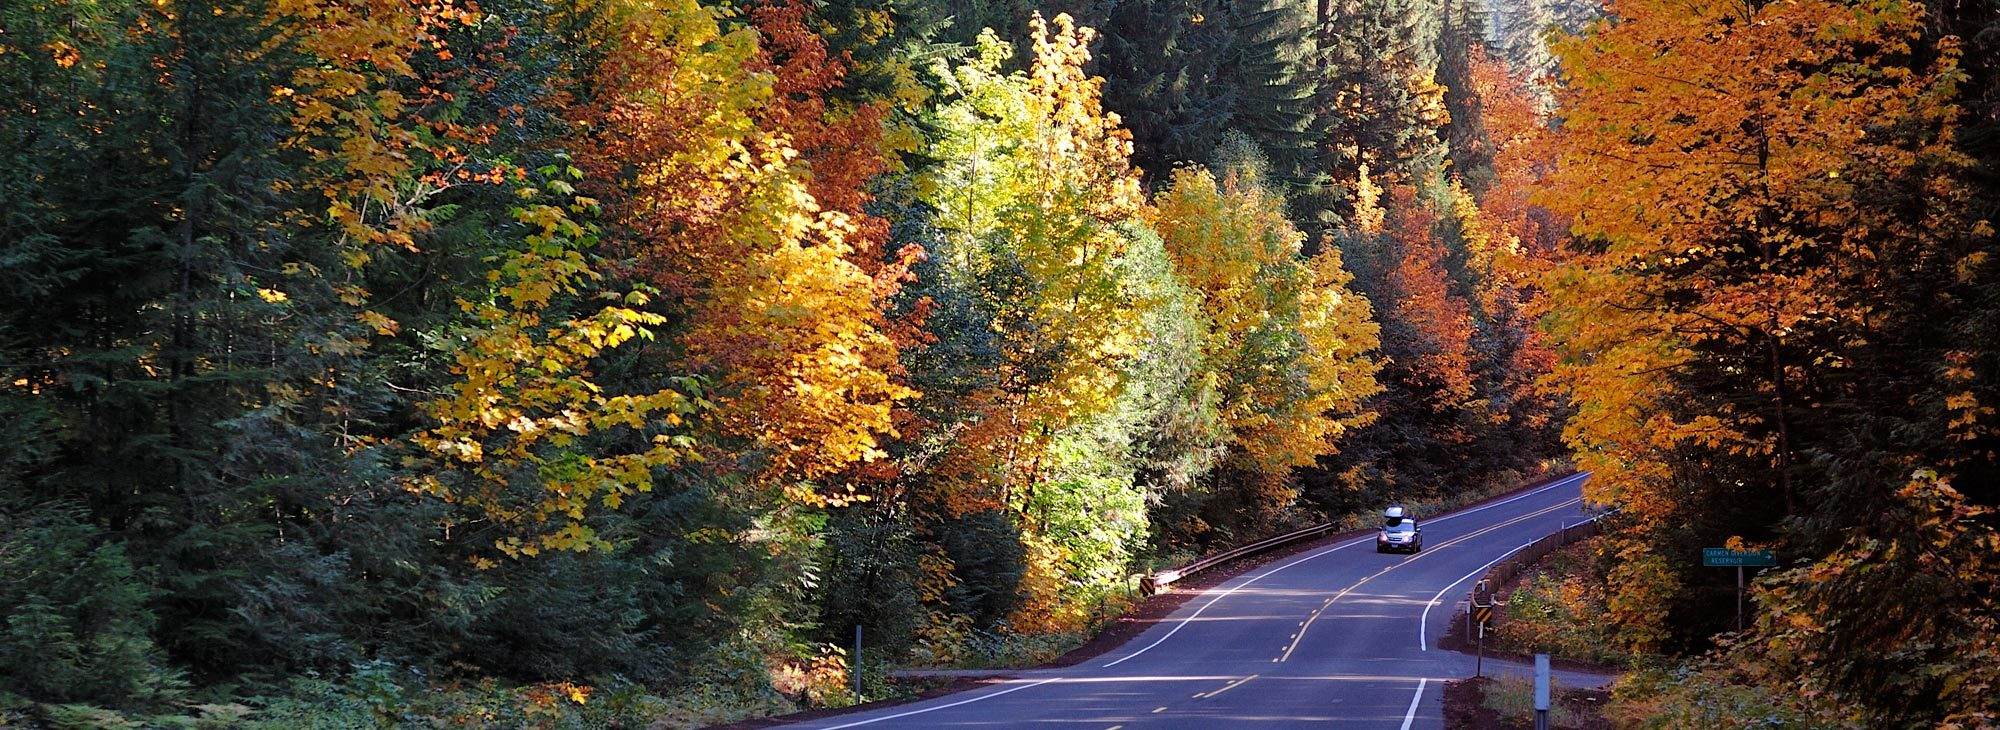 Car driving along Oregon Route 126 with fall foliage as back drop